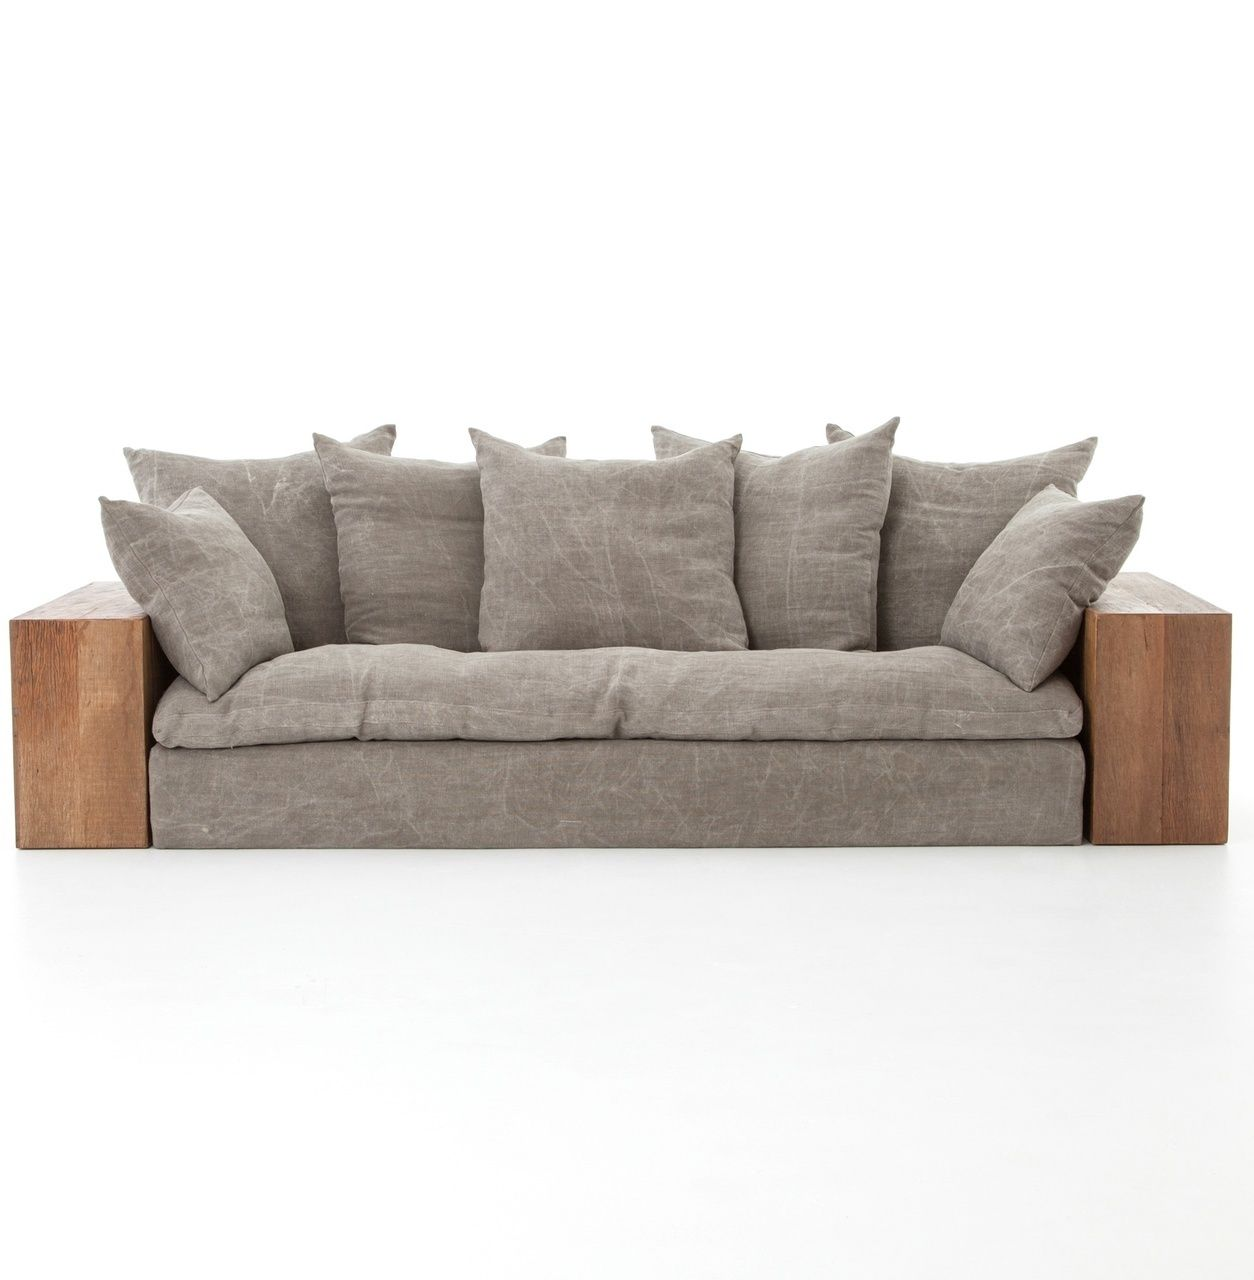 Dorset Industrial Loft Taupe Jute Sofa With Wood Arms Wooden